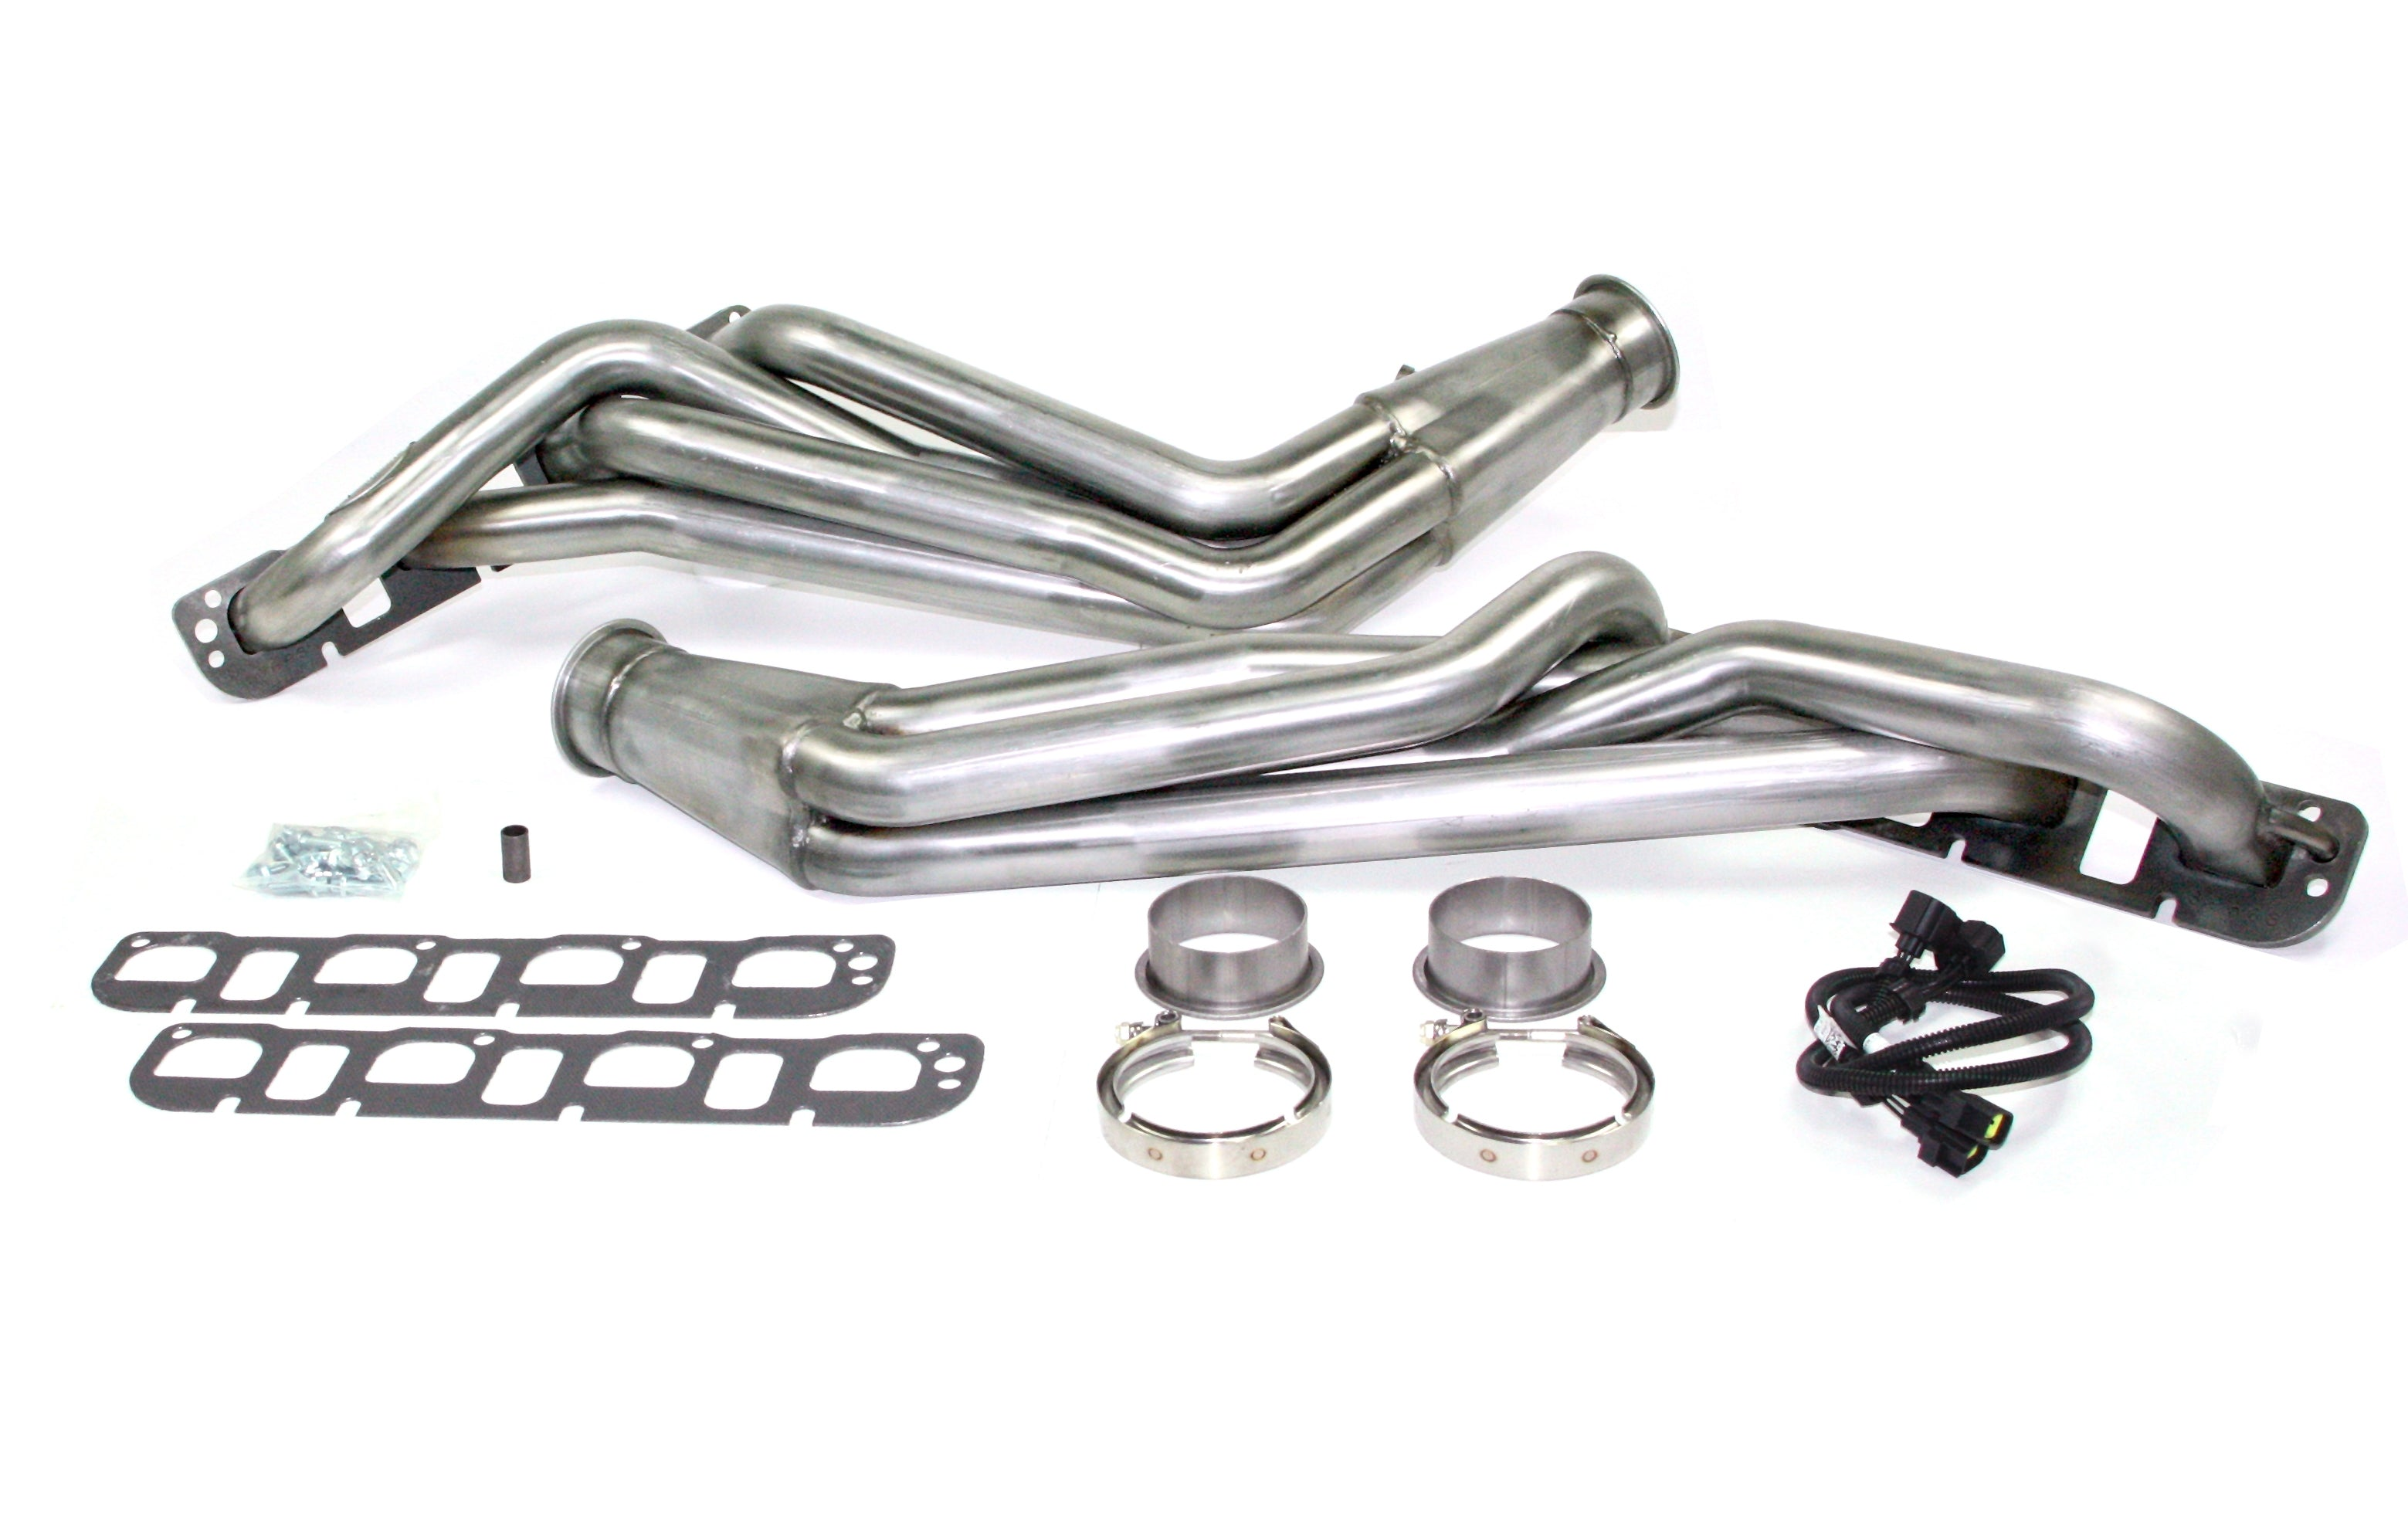 "JBA Performance Exhaust 6966S 1 7/8"" Header Long Tube Stainless Steel 08-2020 Challenger 5.7/6.1/6.2/6.4L 05-2020 Charger/300C/Magnum 5.7/6.1/6.2/6.4L"